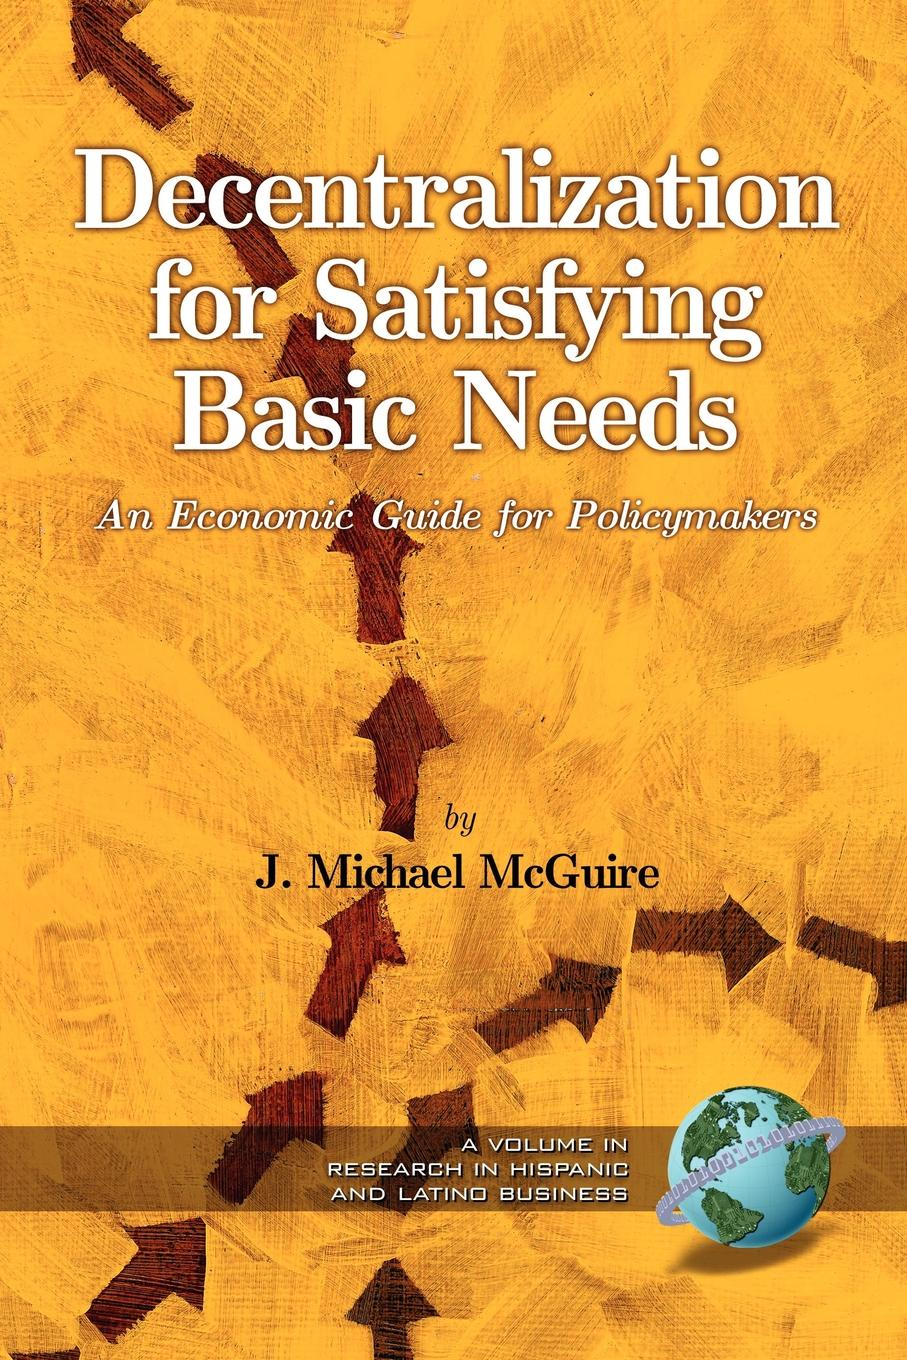 J. Michael McGuire, Michael J. McGuire Decentralization for Satisfying Basic Needs. An Economic Guide for Policy Makers (PB) michael archer d the forex chartist companion a visual approach to technical analysis